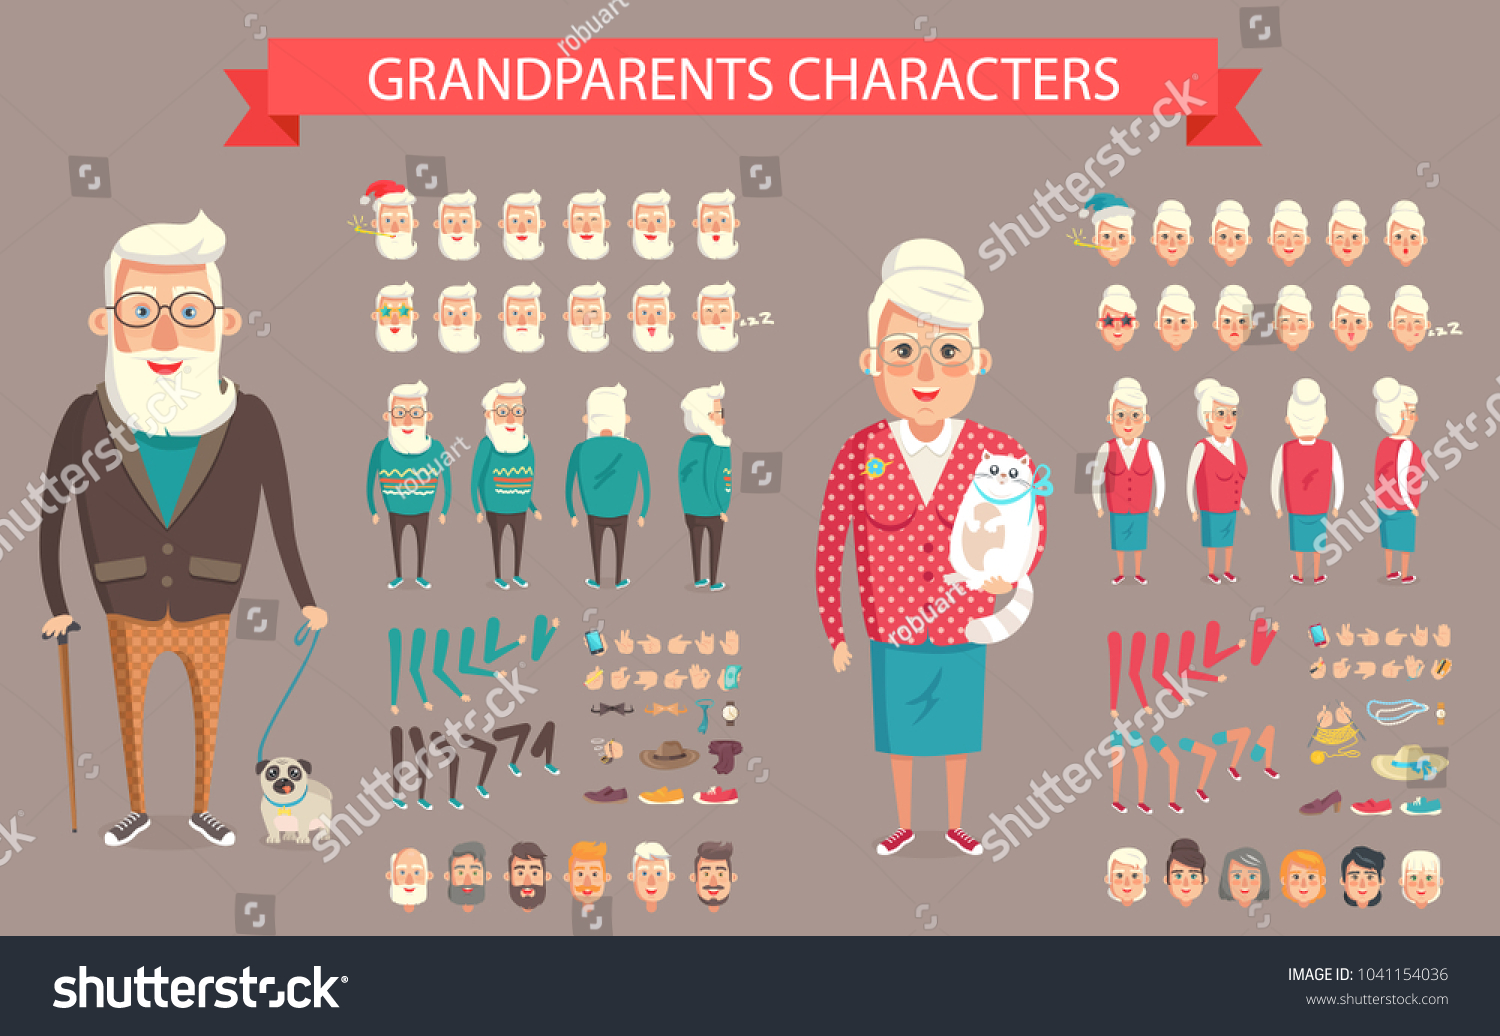 Grandparents Illustration Create Your Own Grandmother Stock ...